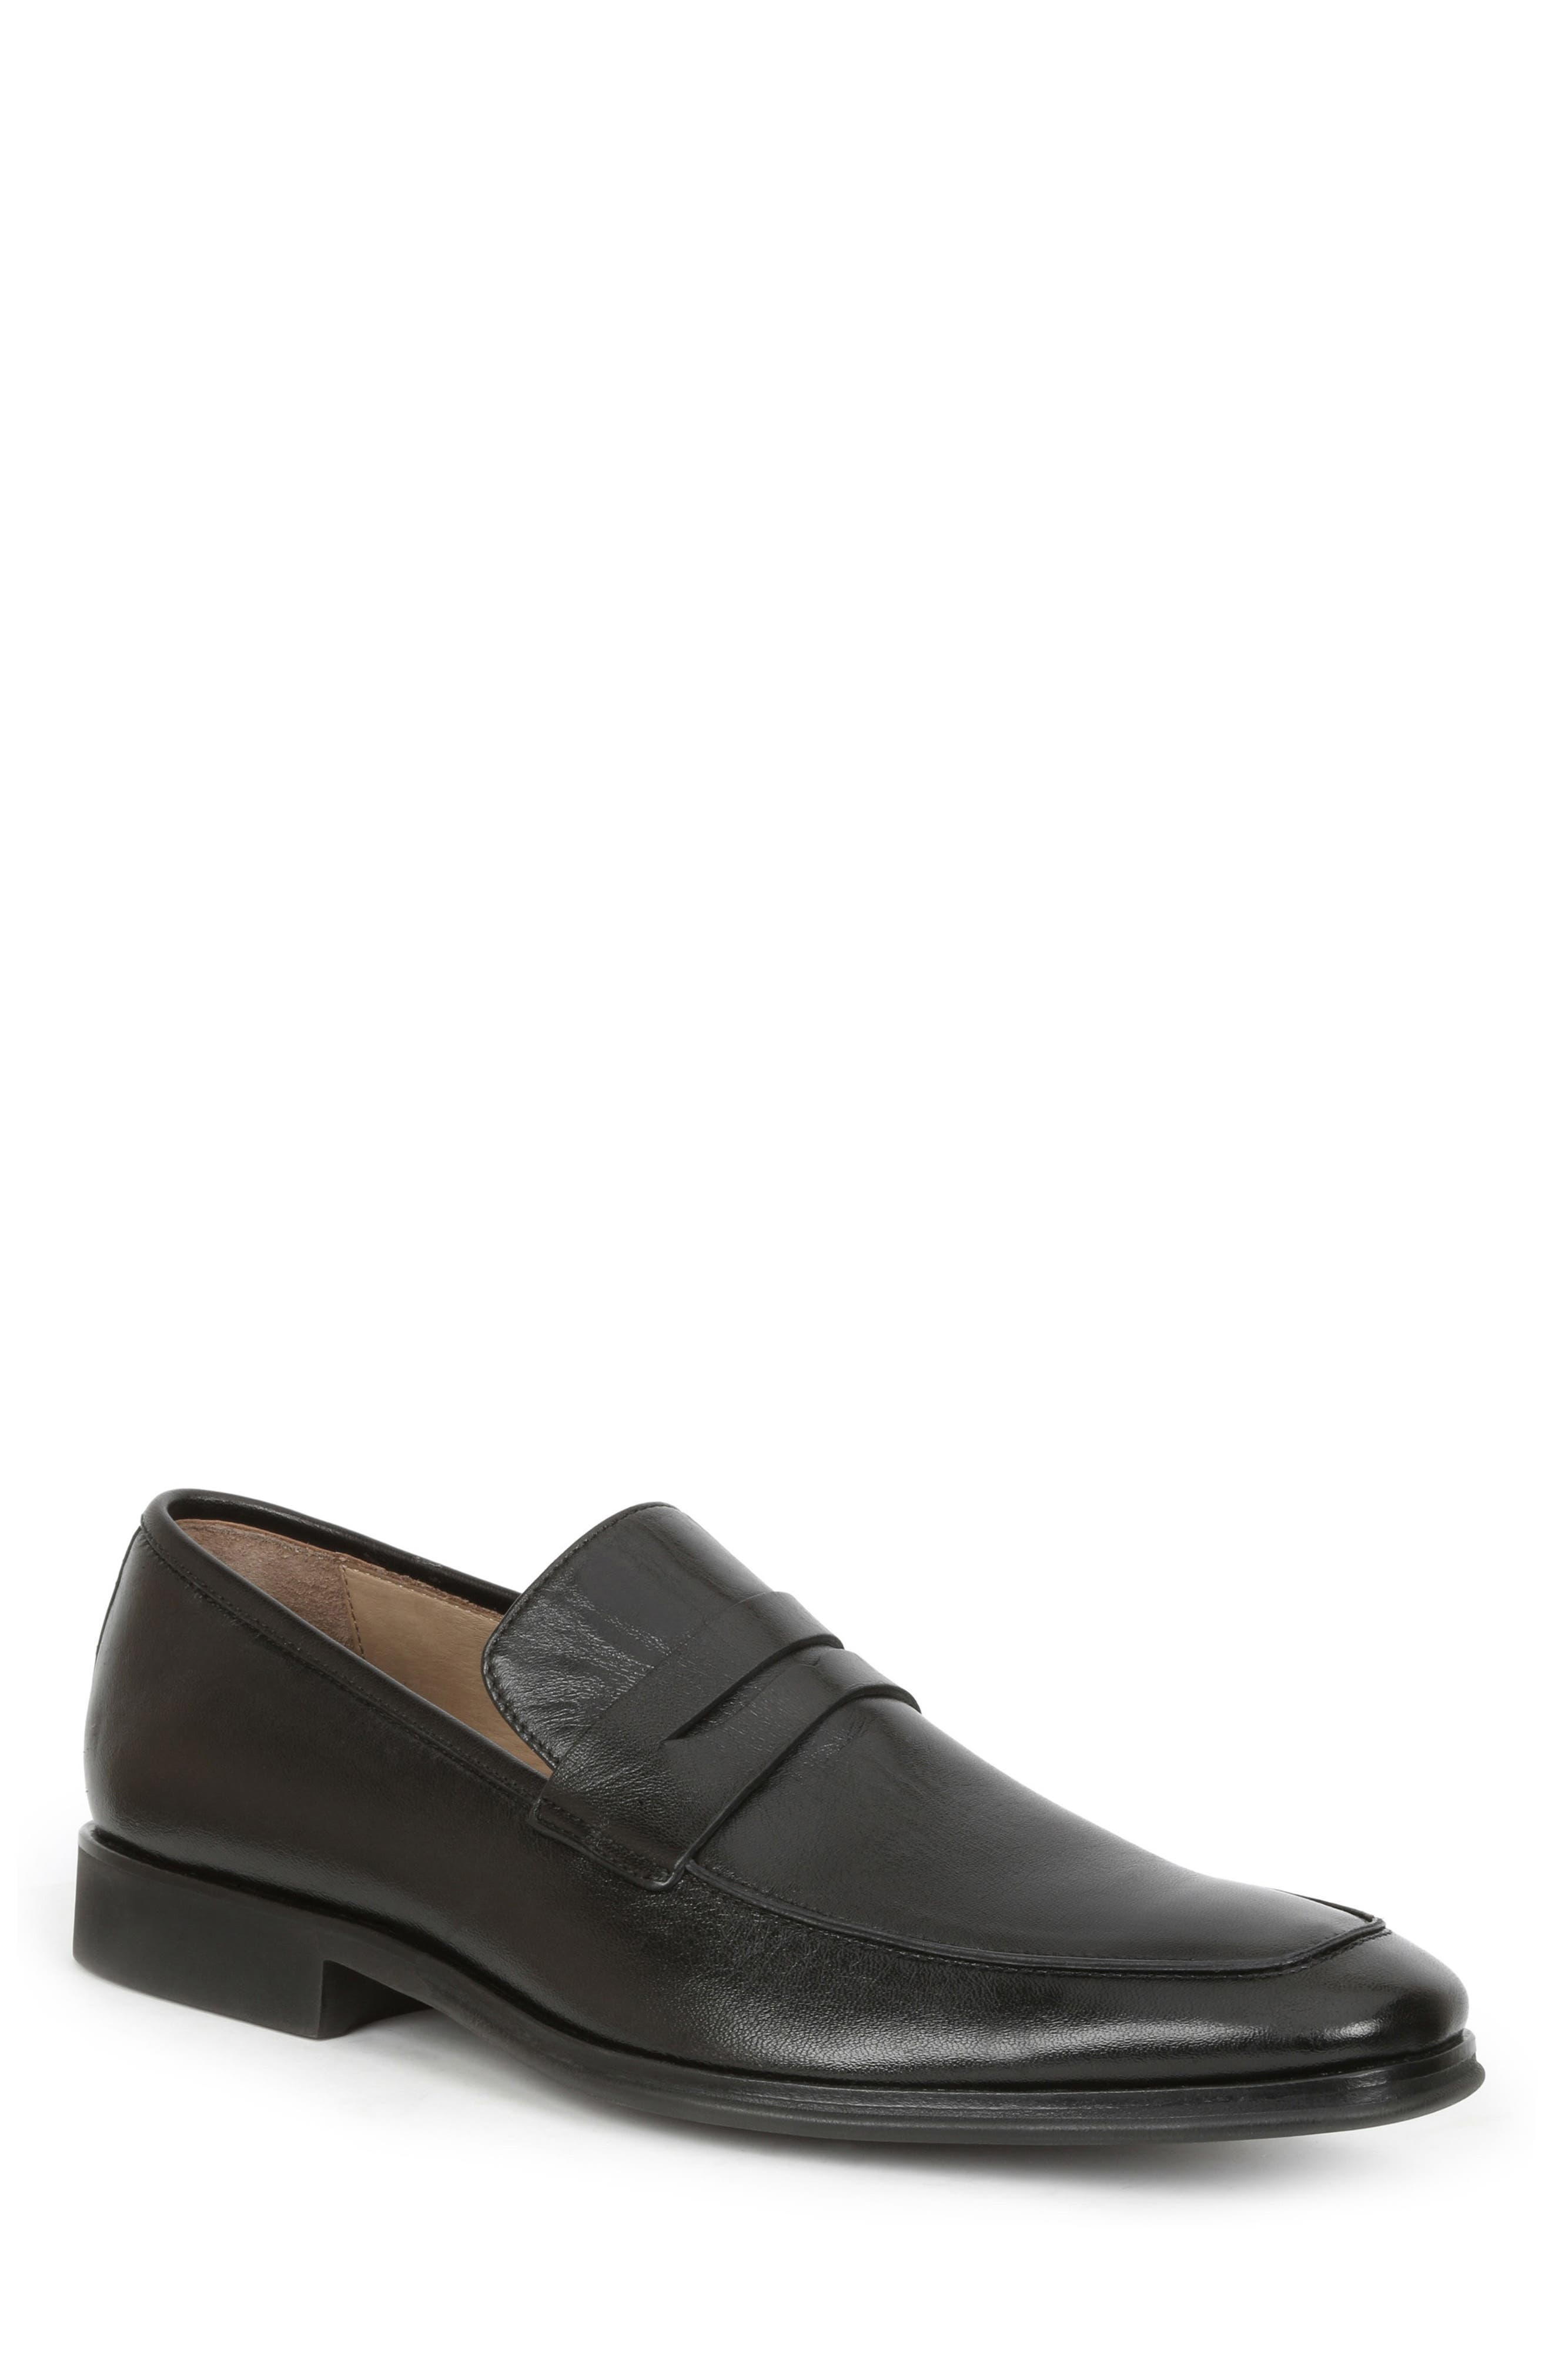 Ragusa Penny Loafer,                         Main,                         color, Black Leather